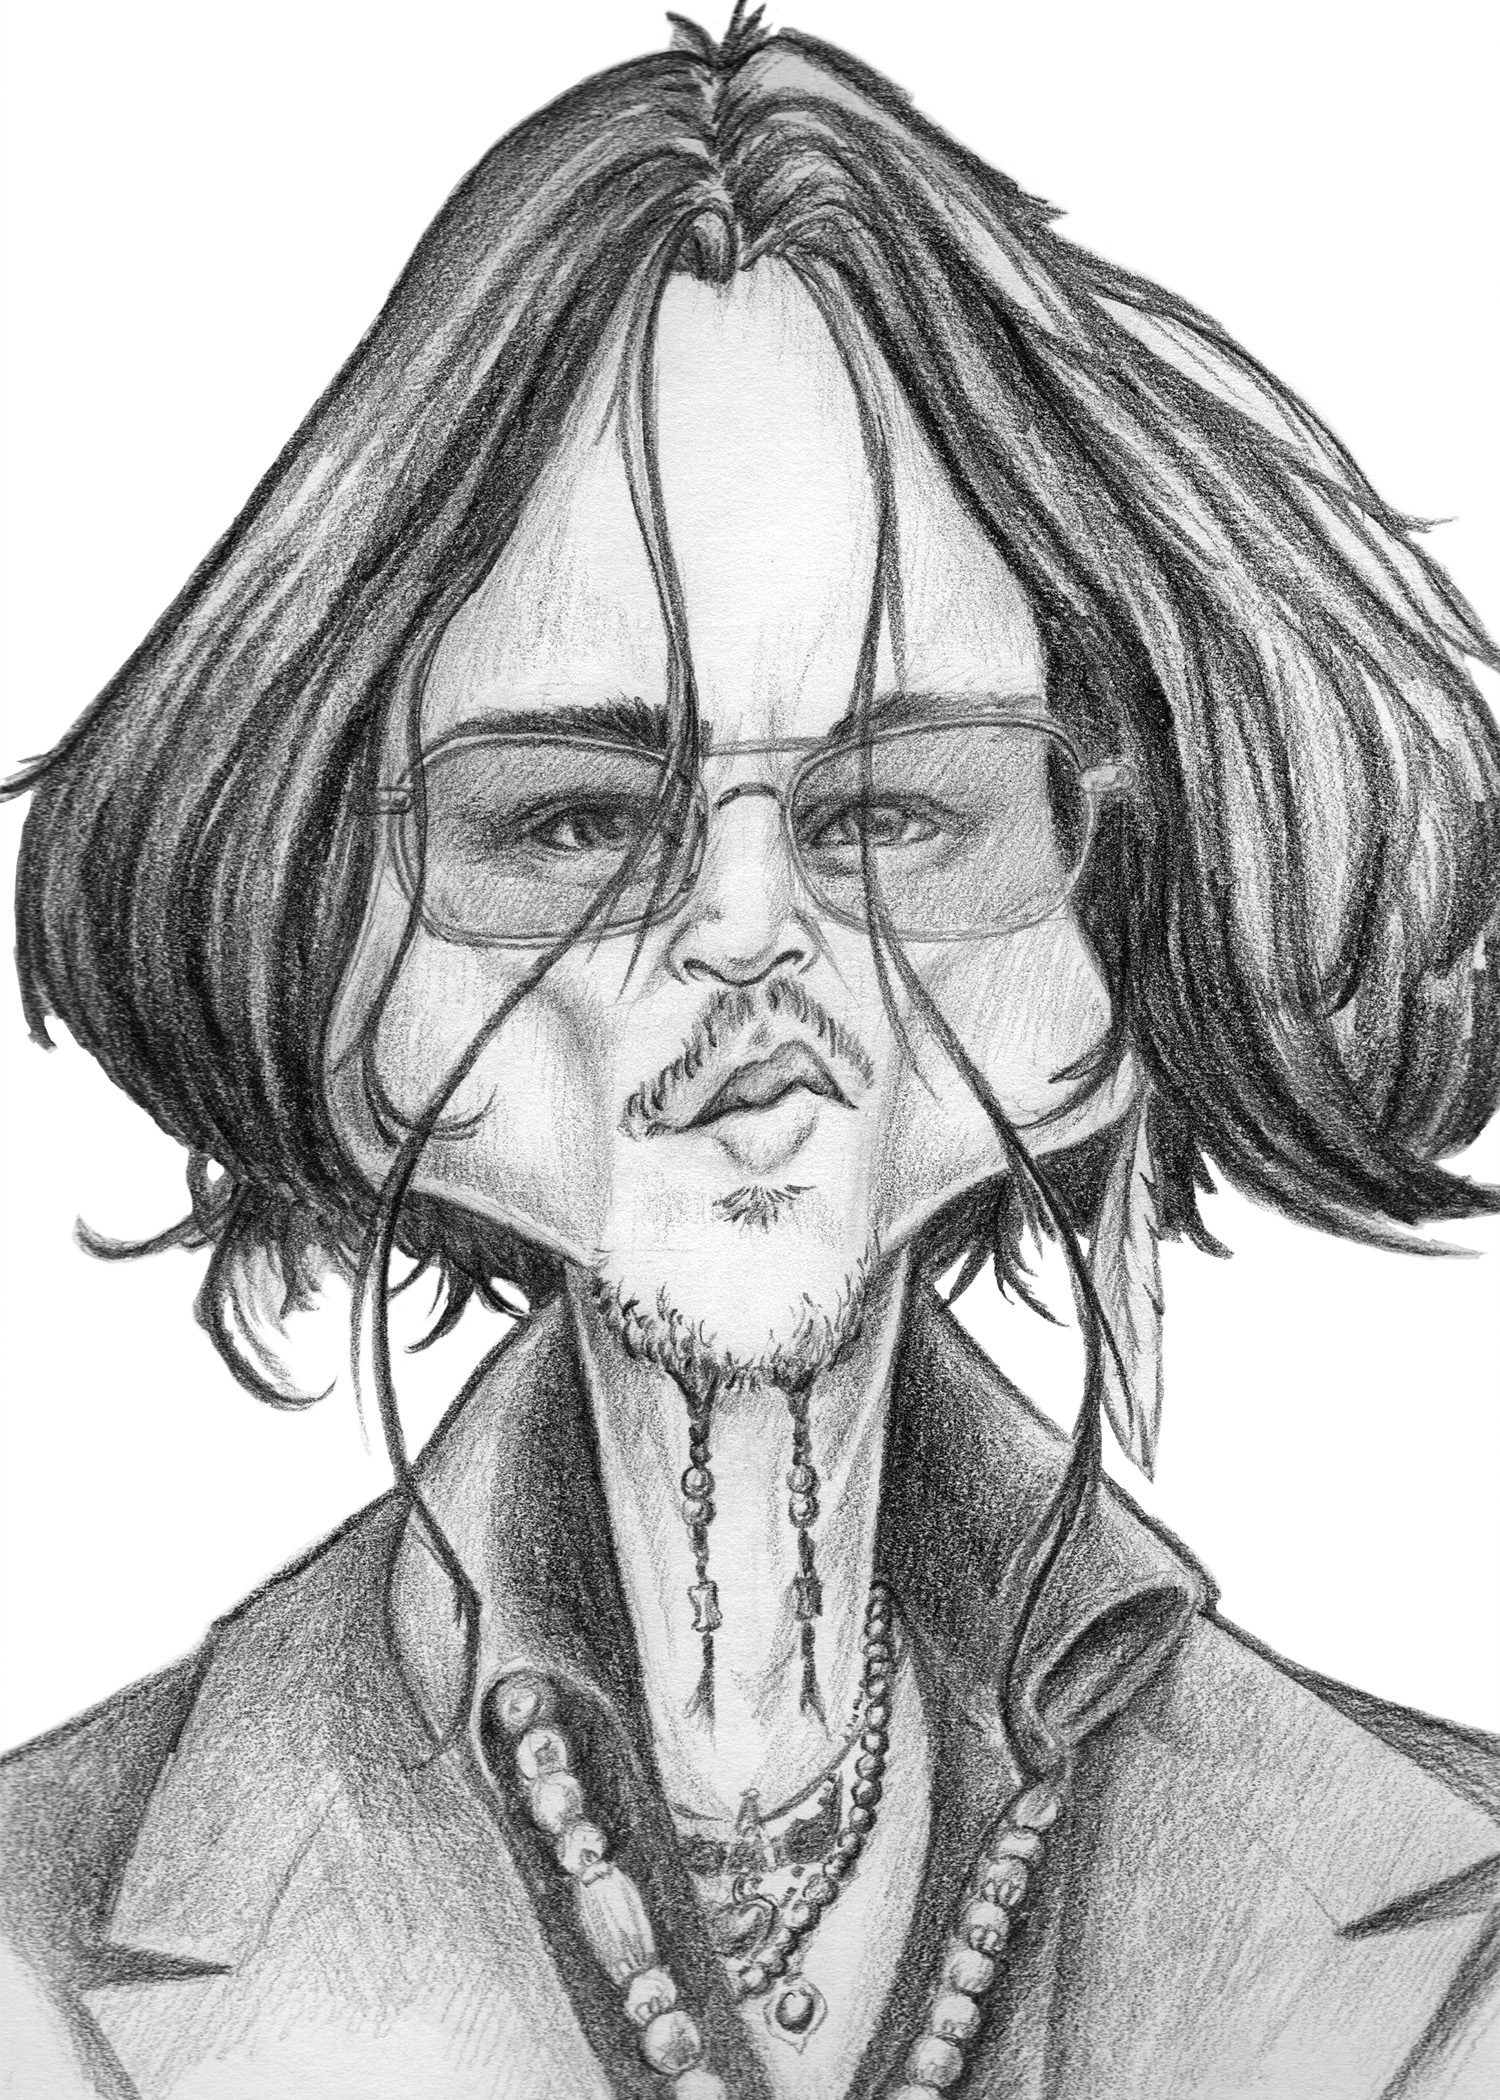 Caricature of Johnny Depp